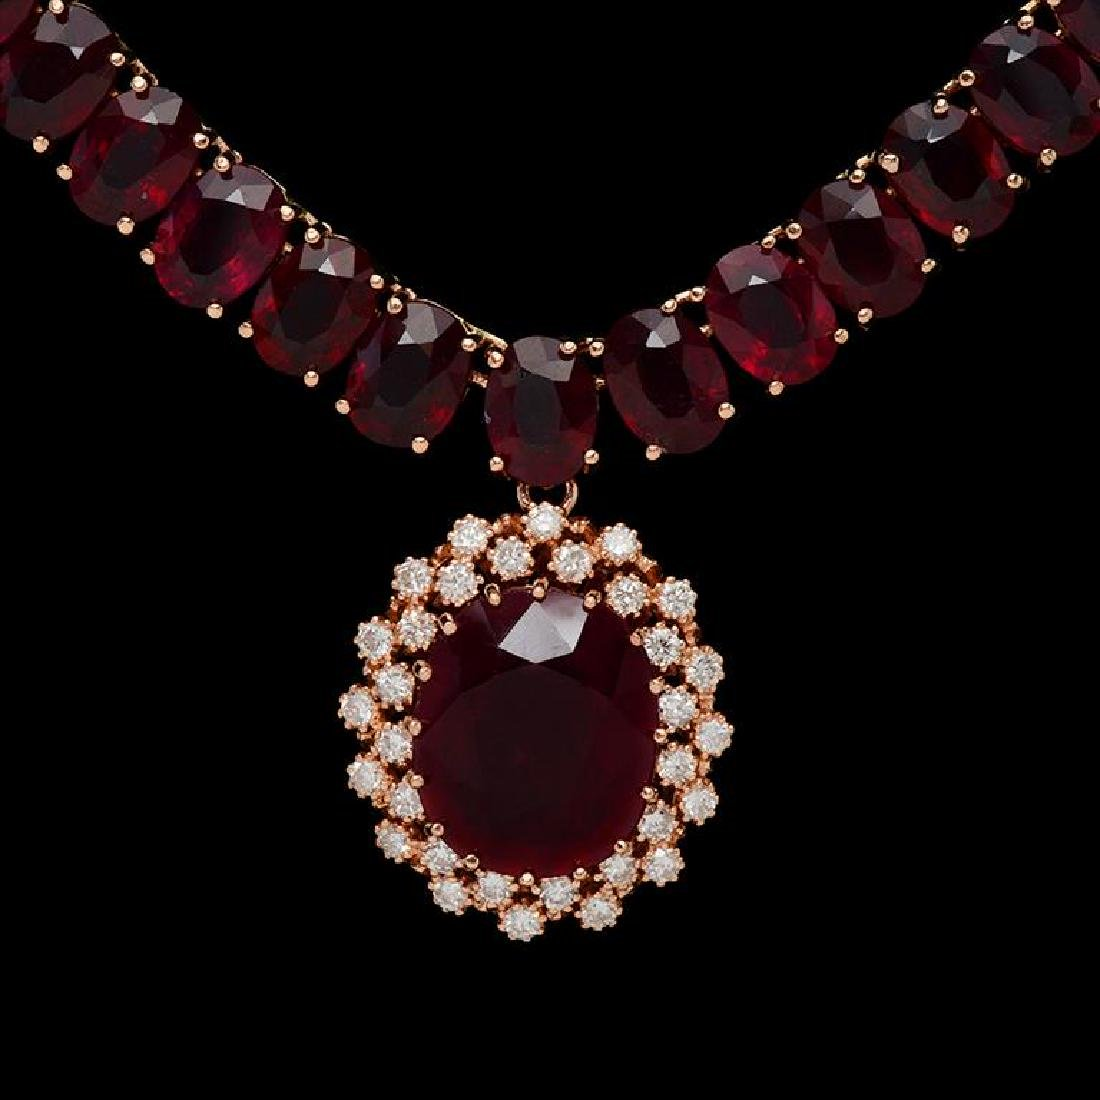 14K Gold 142.96ct Ruby & 1.10ct Diamond Necklace - 2